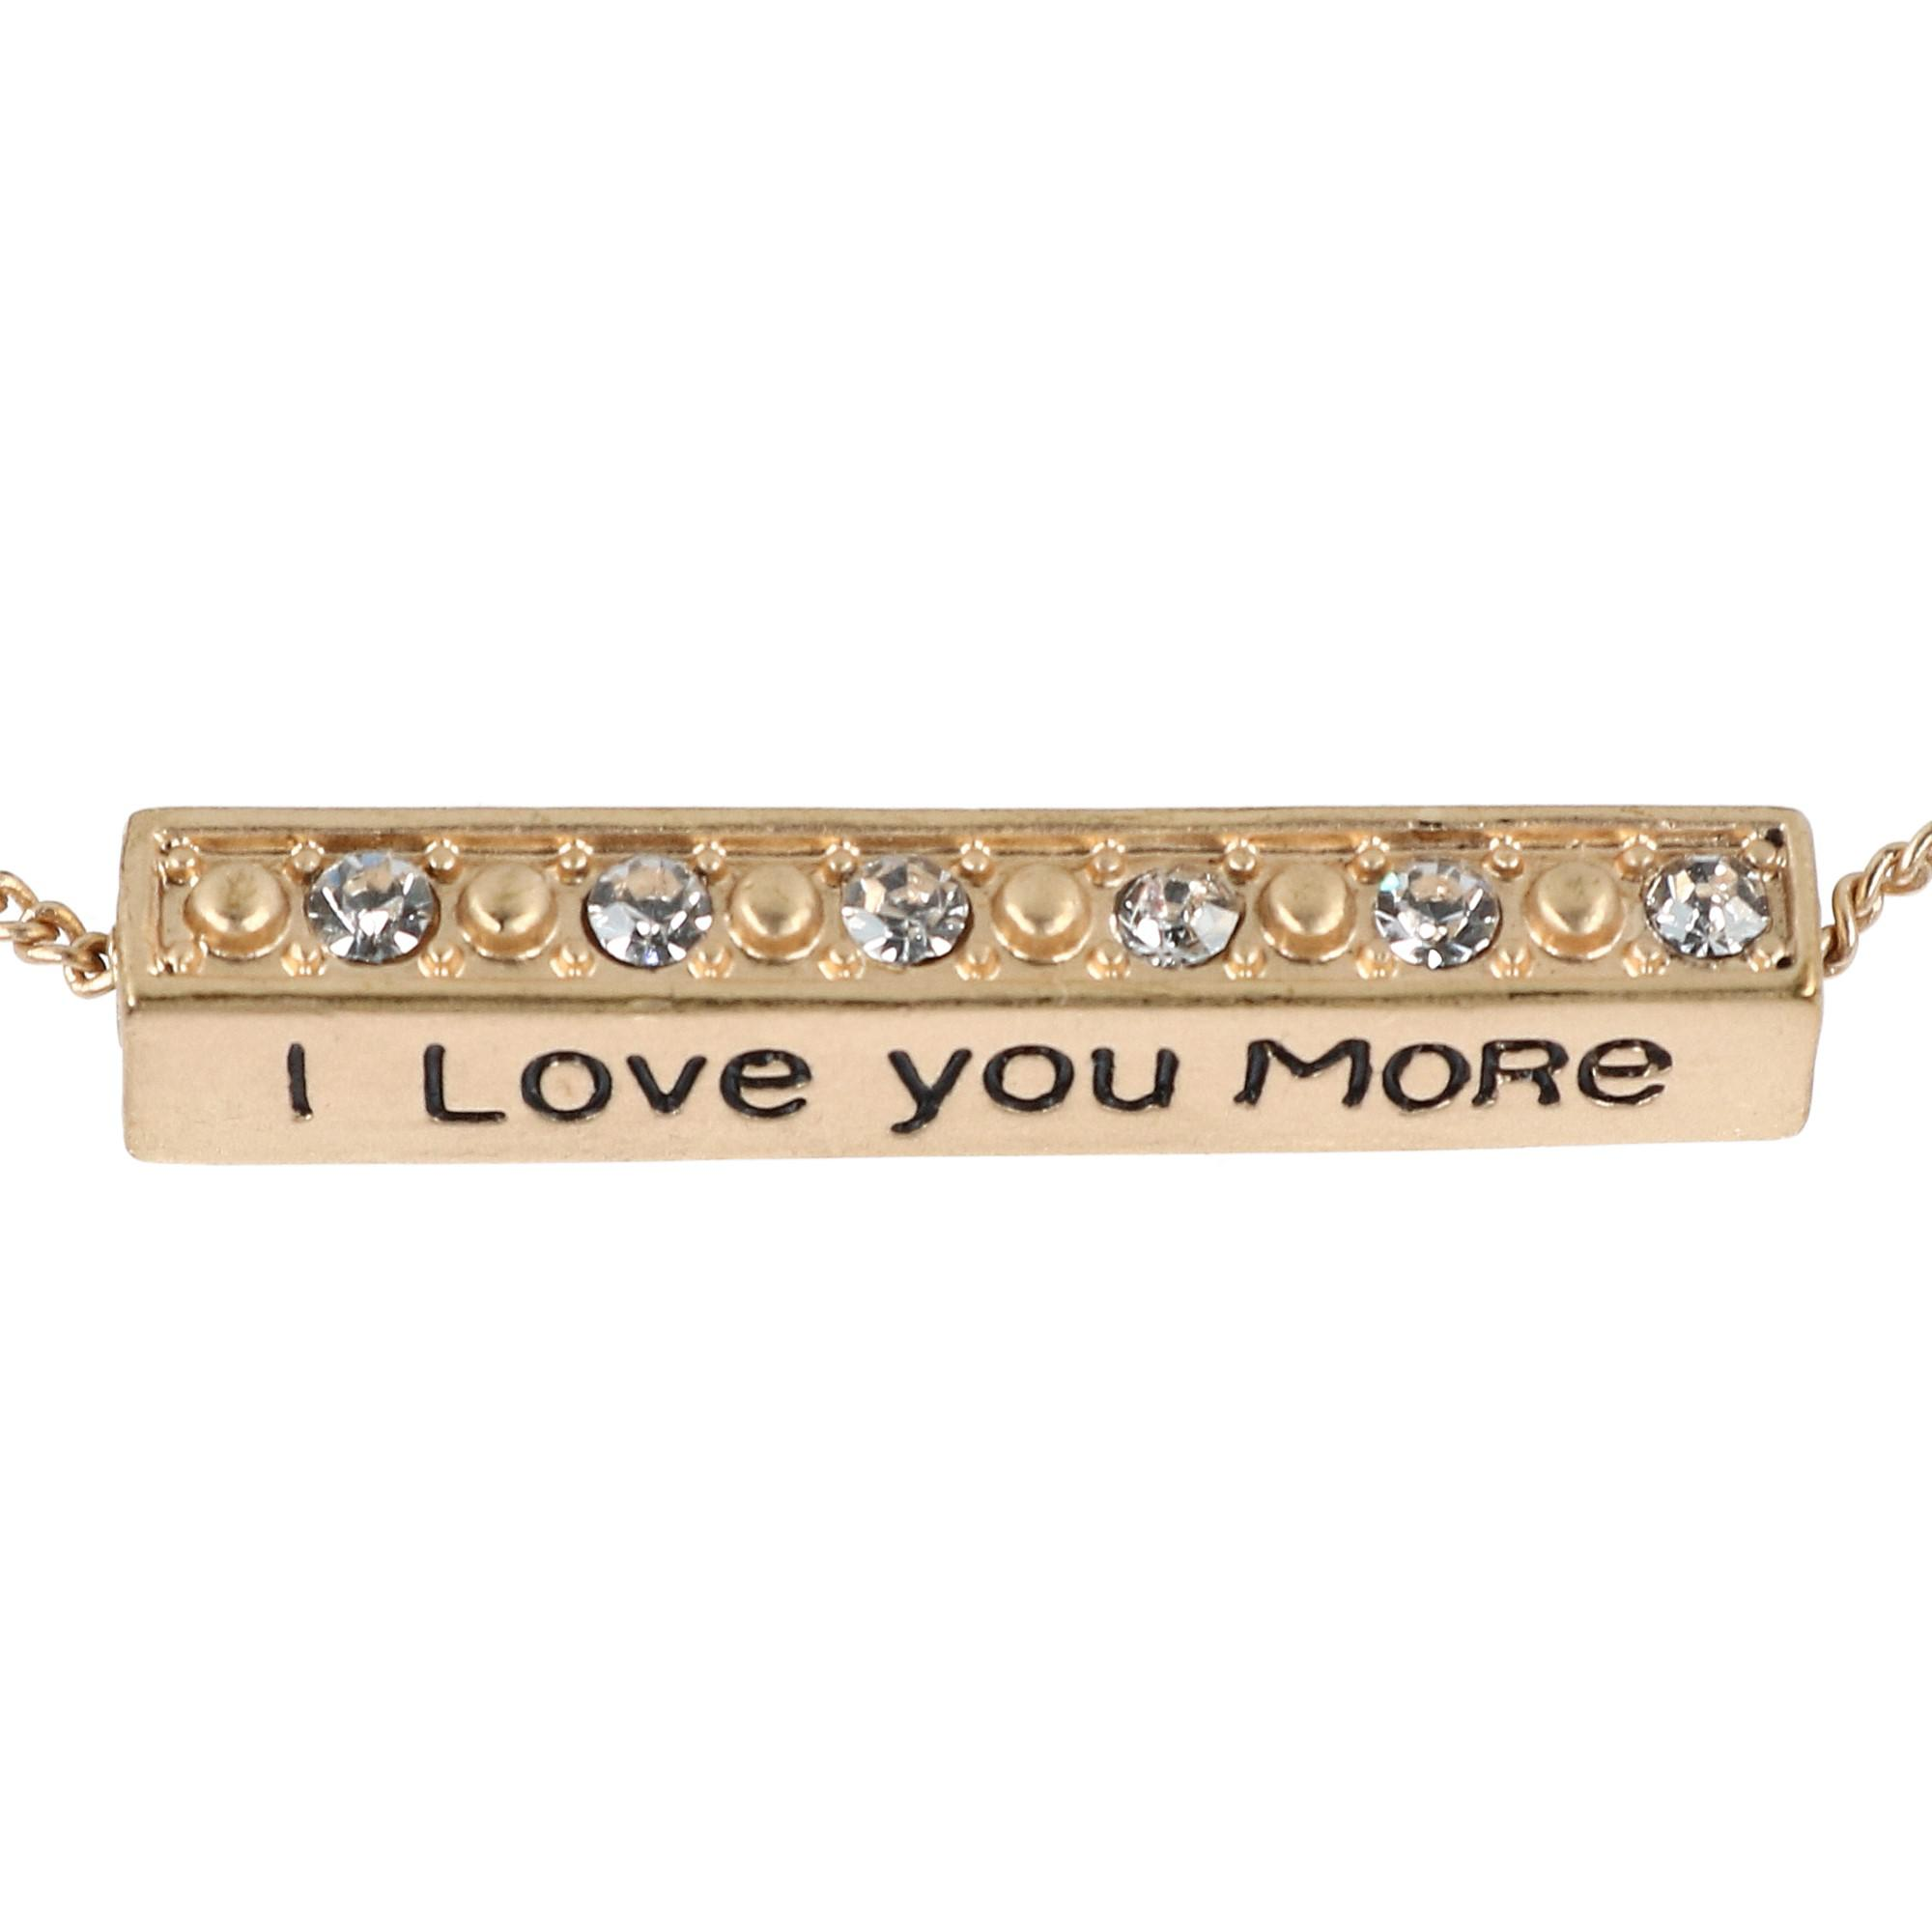 Accessorize Me I Love You More Bar Pendant Necklace with Rhinestones - image 1 of 5